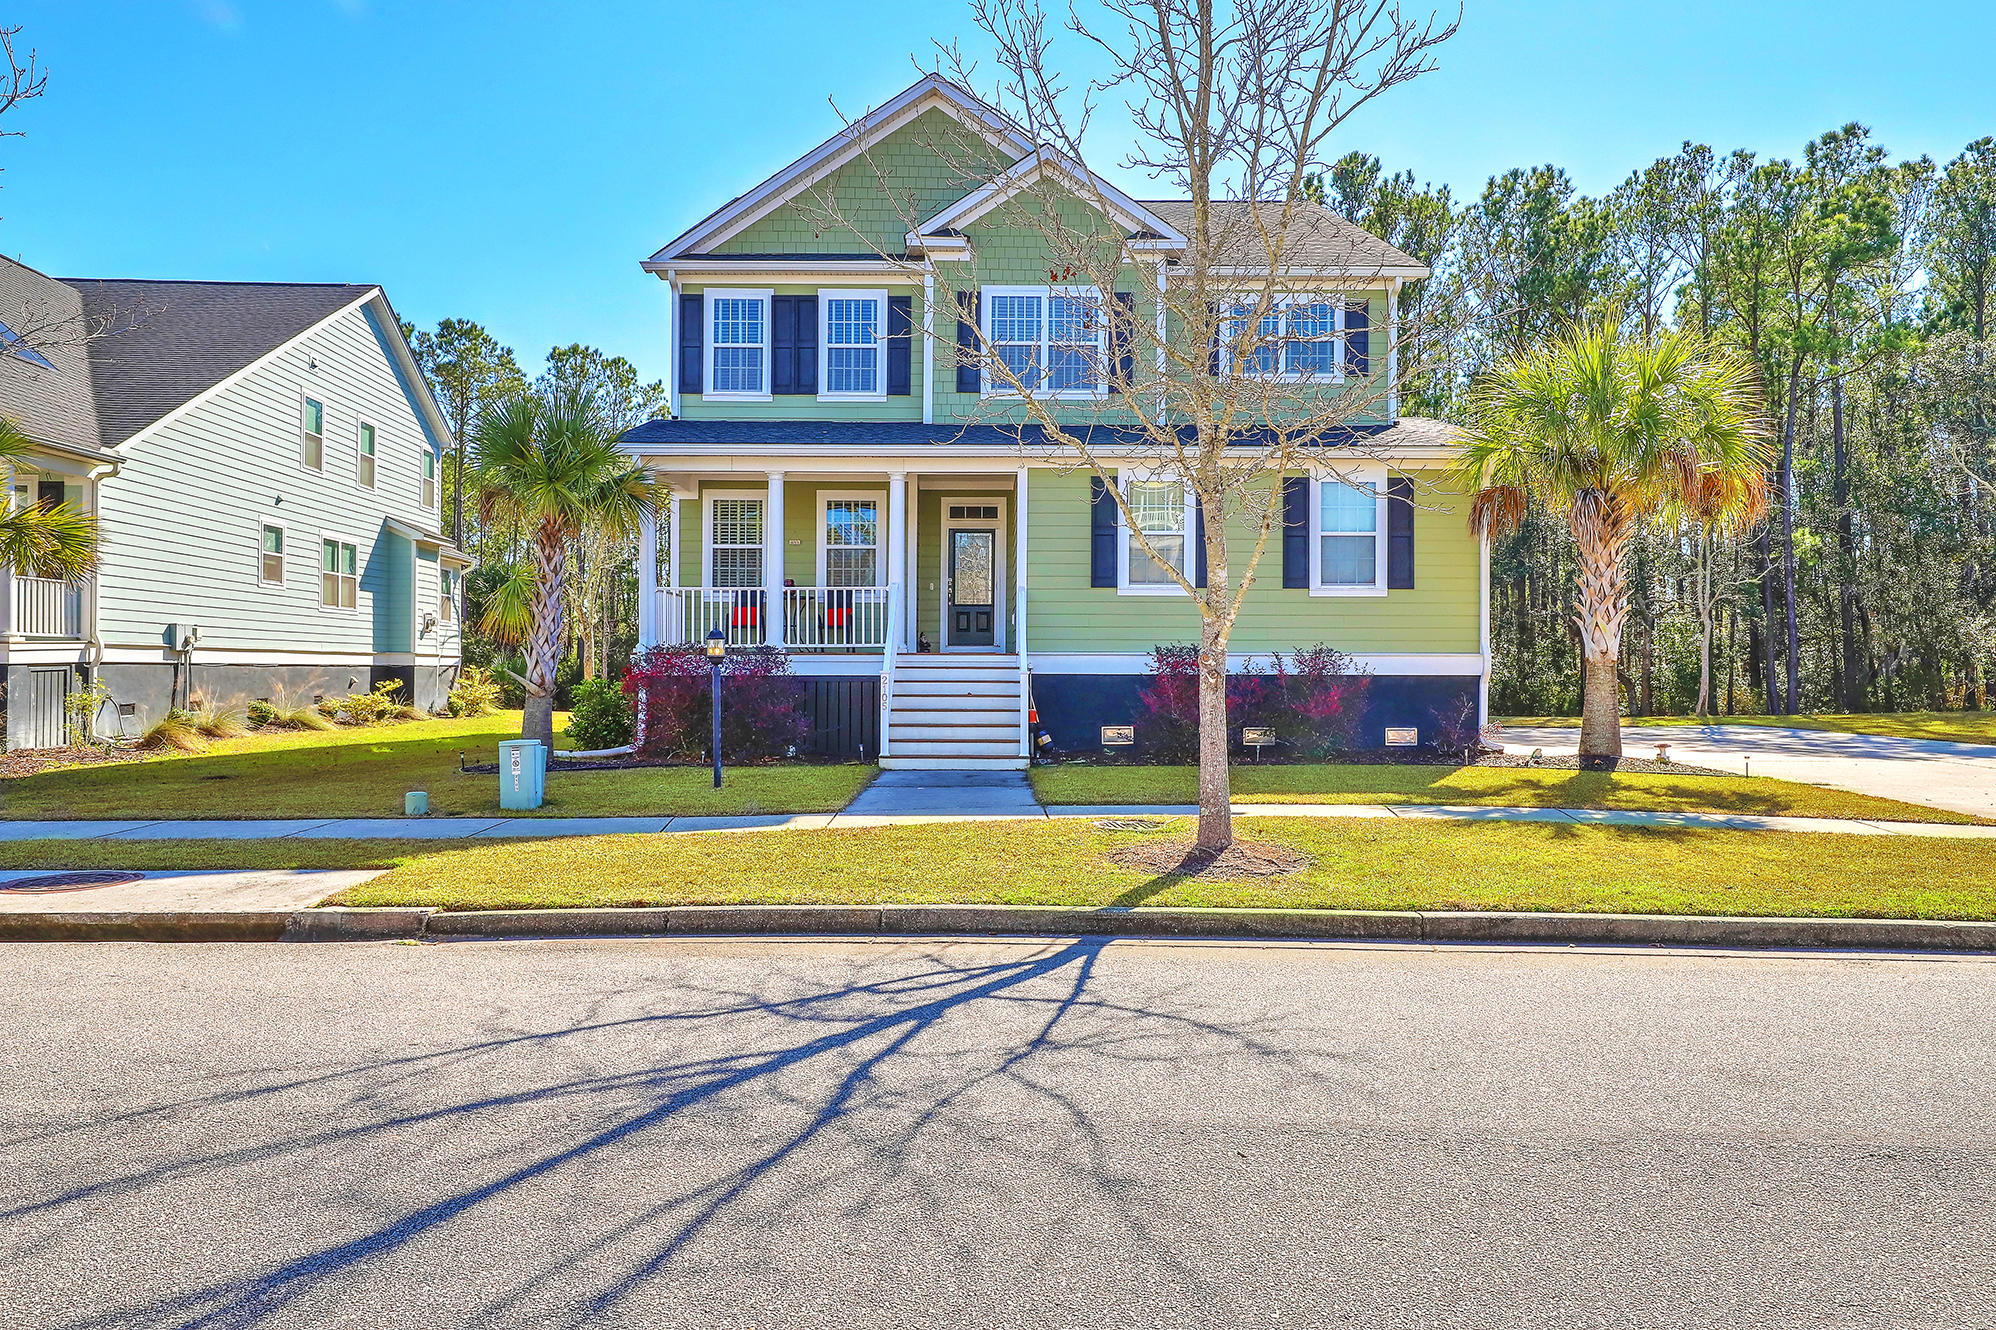 Rivertowne On The Wando Homes For Sale - 2105 Sandy Point, Mount Pleasant, SC - 64